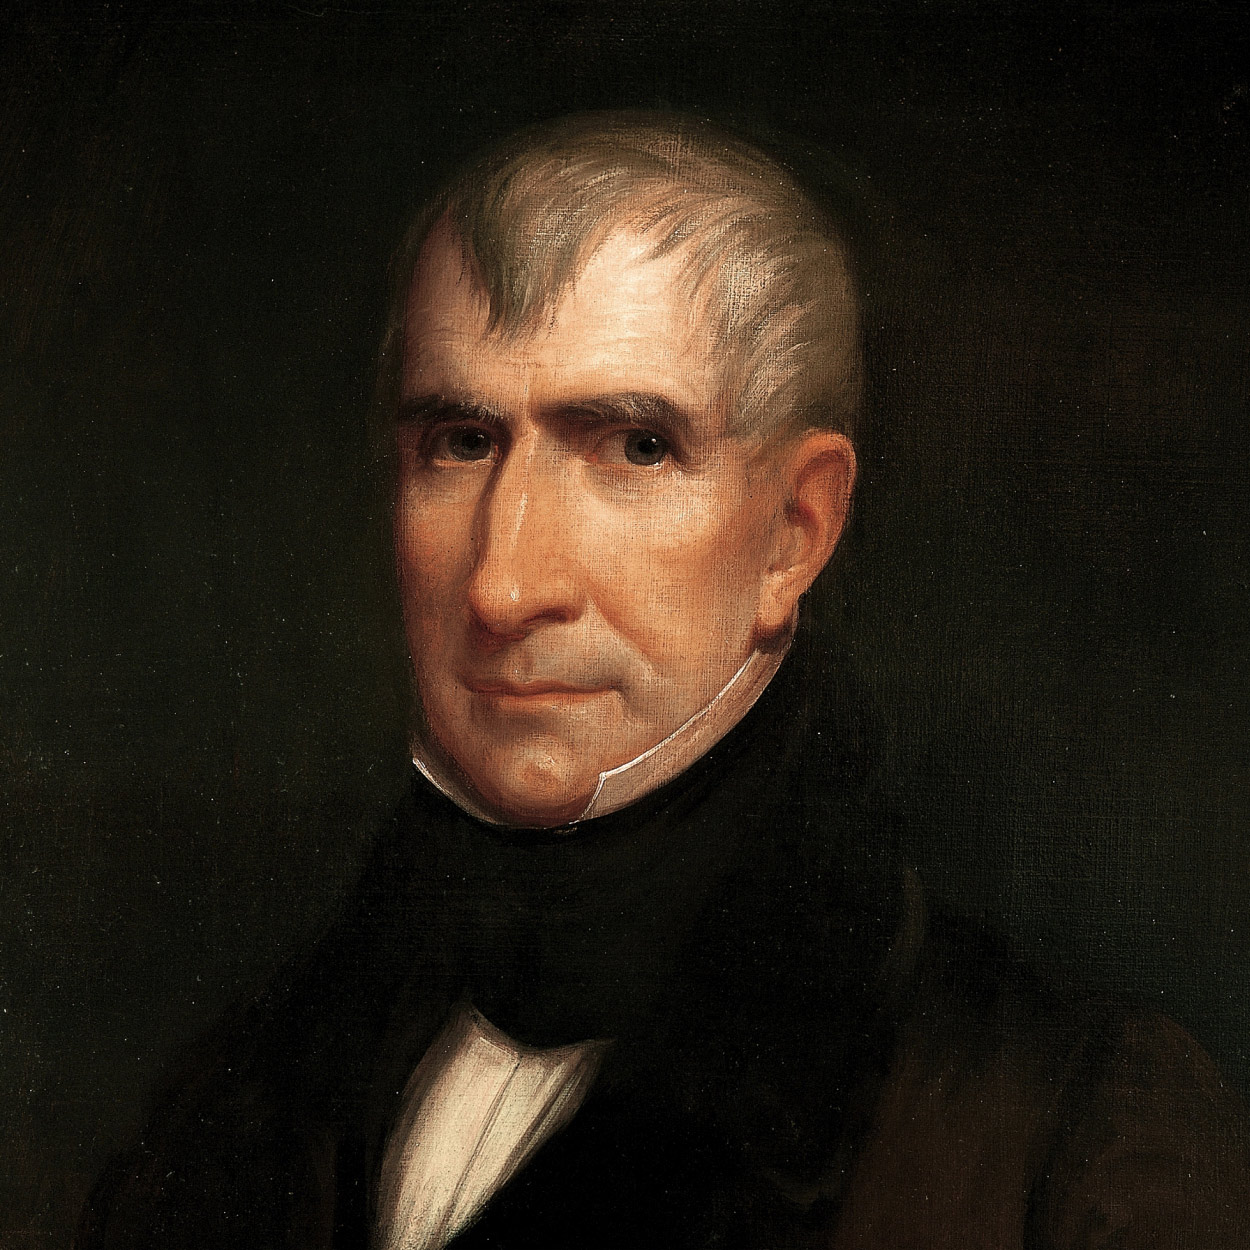 Portrait of William Henry Harrison, the 9th President of the United States